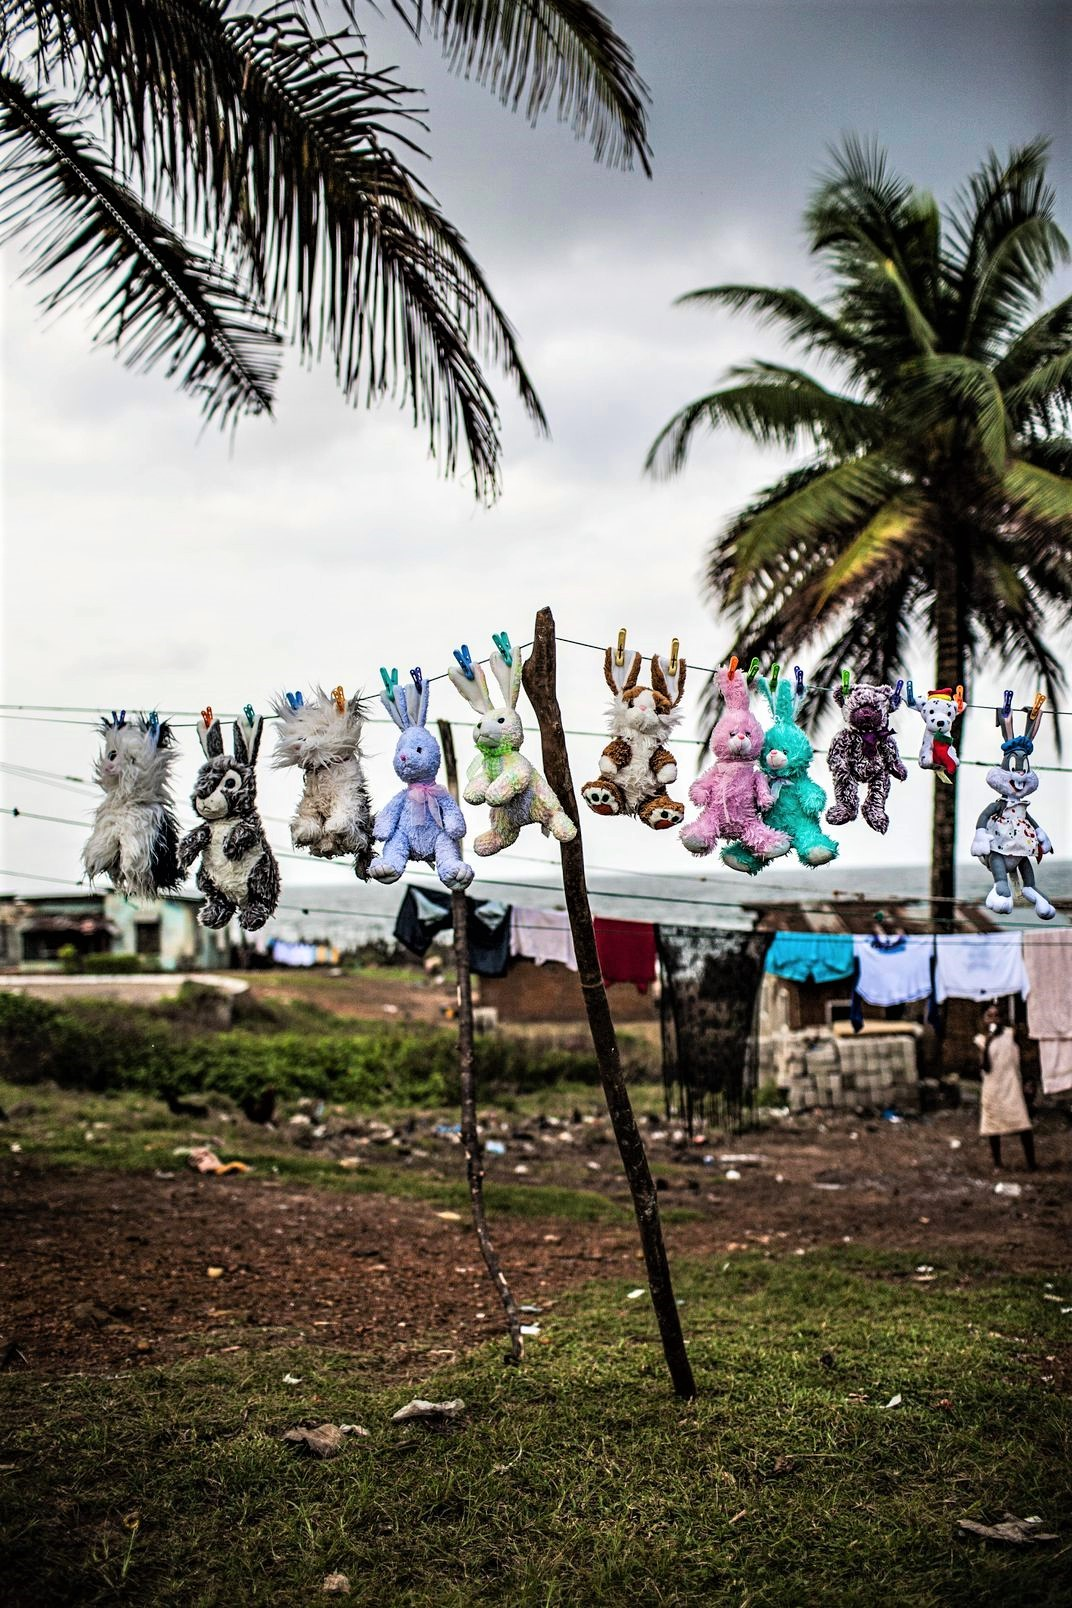 Stuffed animals are washed and hung out to dry in Harper in August 2010. Image Glenna Gordon.